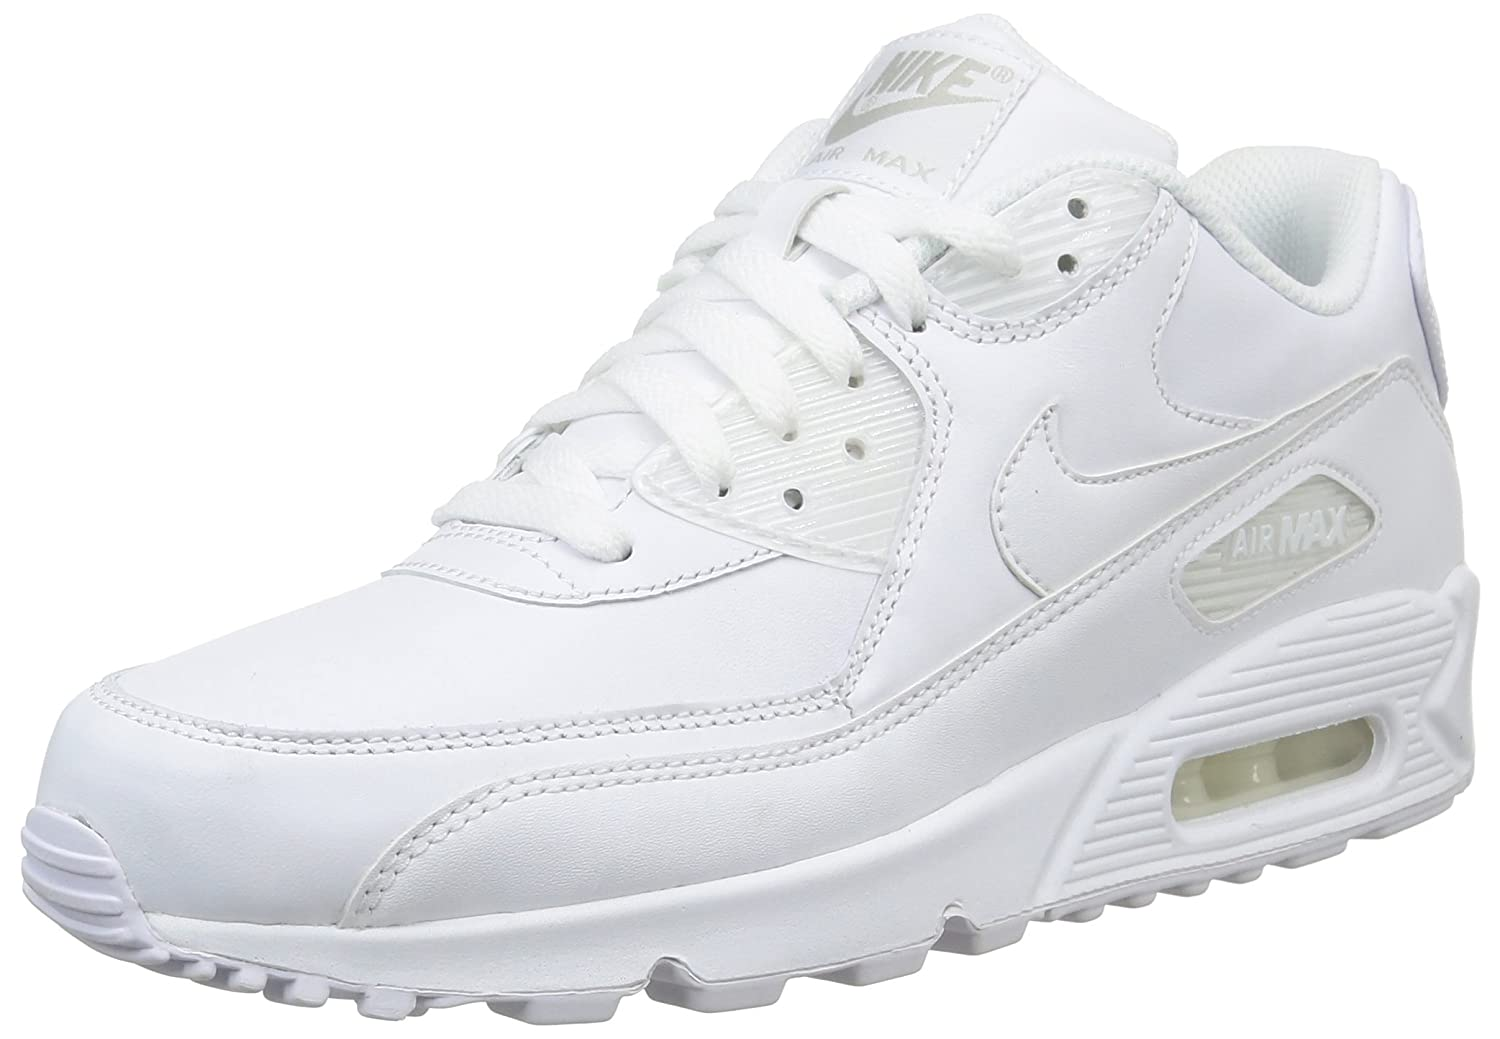 NIKE Men's Air Max 90 Leather Running Shoe B002LFY7OC 10 D(M) US|White / White